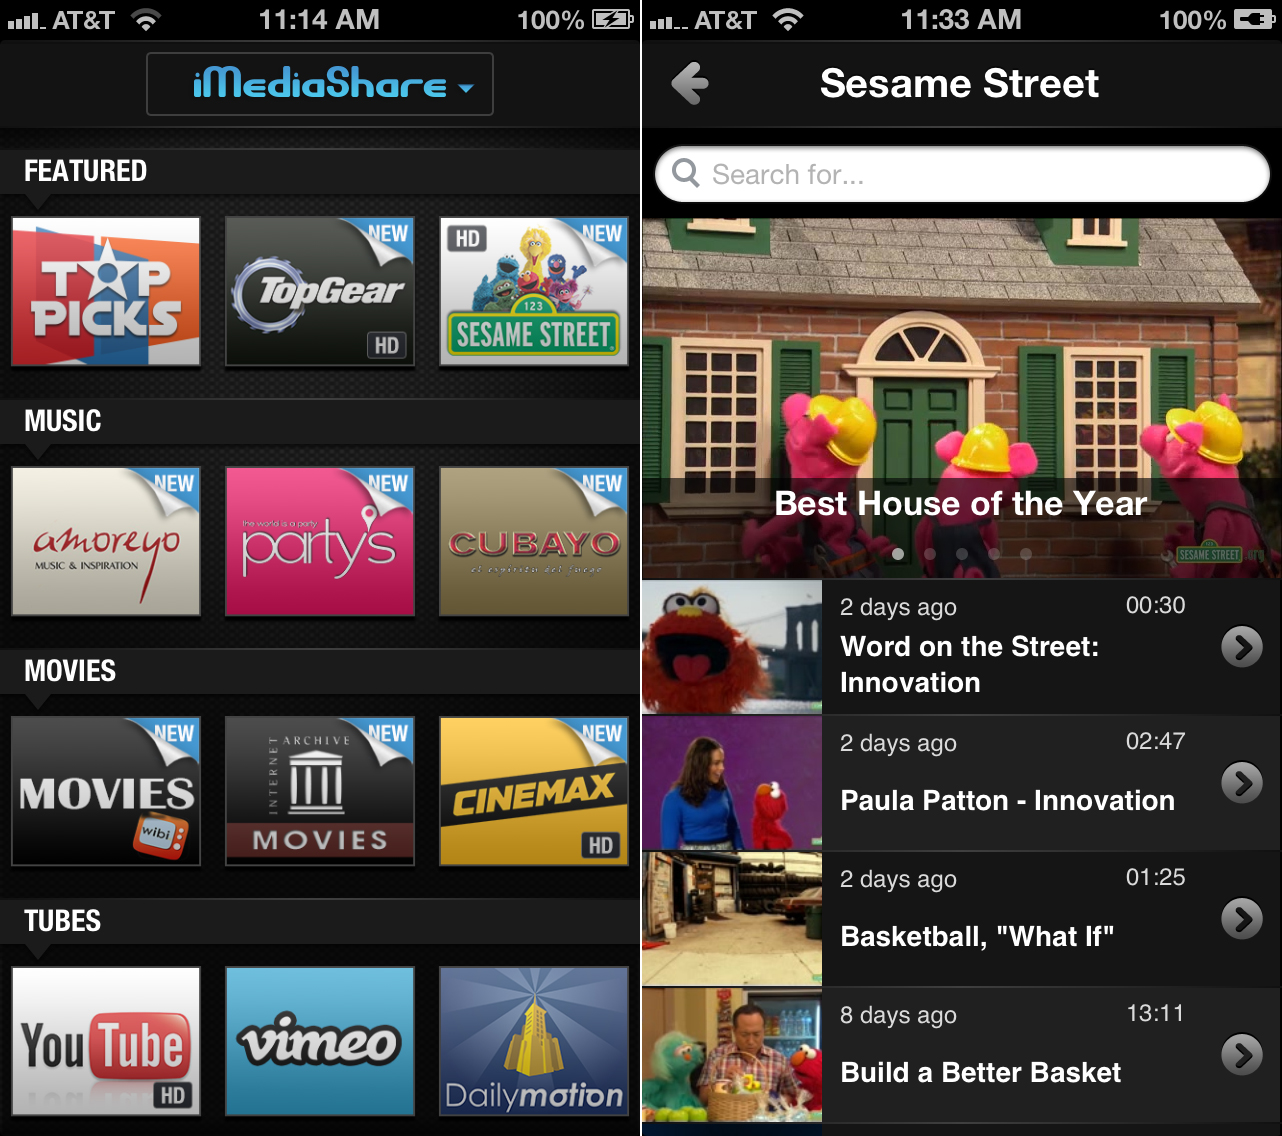 Try iMediaShare For Free Today For A Chance To Win A $50 Amazon Gift Card